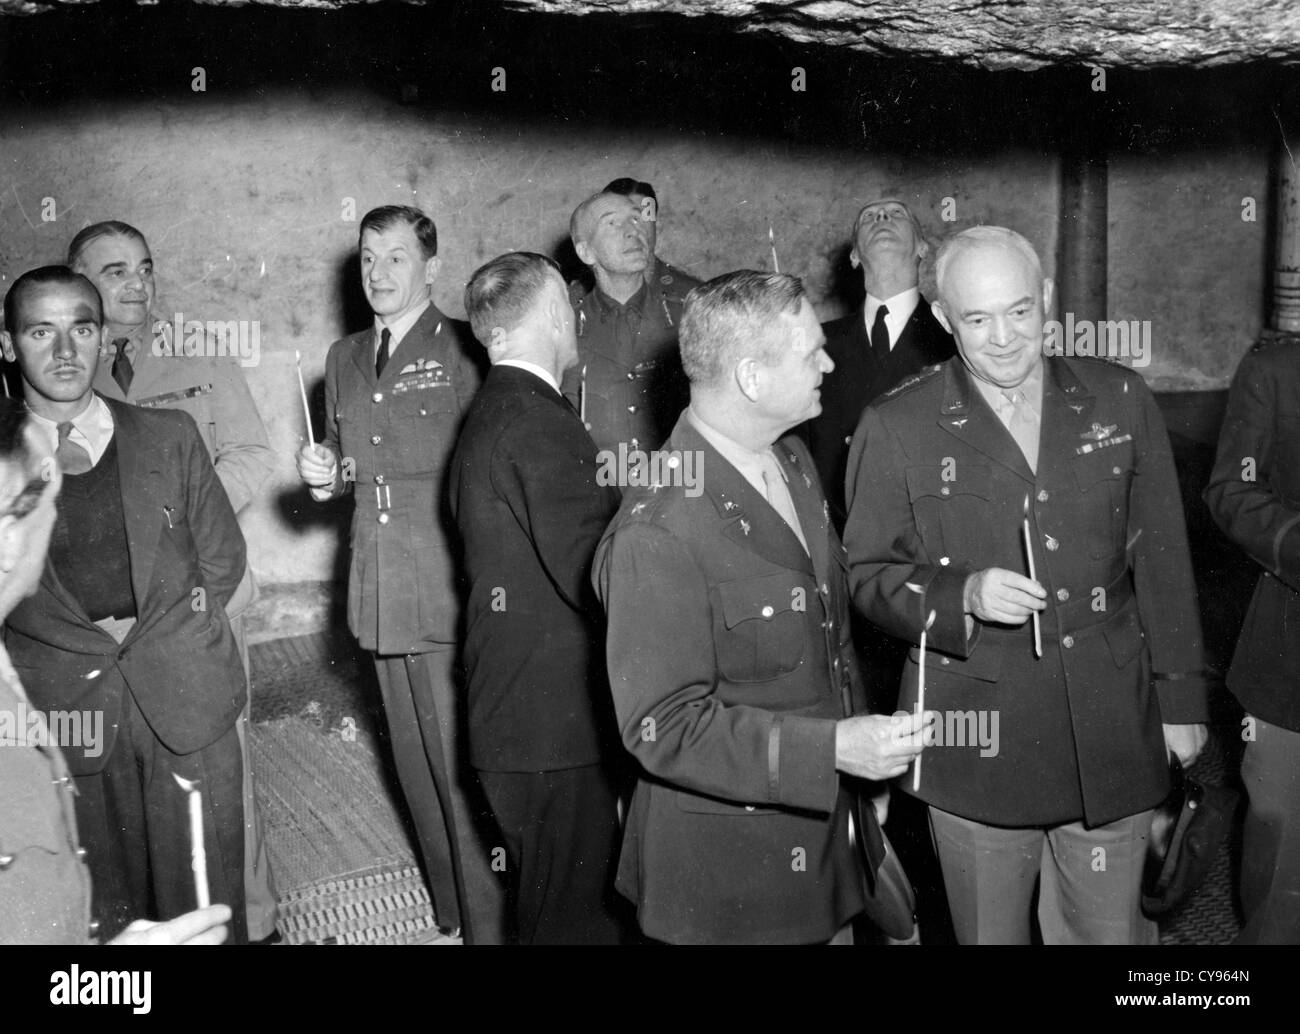 ALLIED LEADERS in the Dome of the Rock, Jerusalem, on way back from  Tehran Conference in December 1943. Photo Lewis - Stock Image